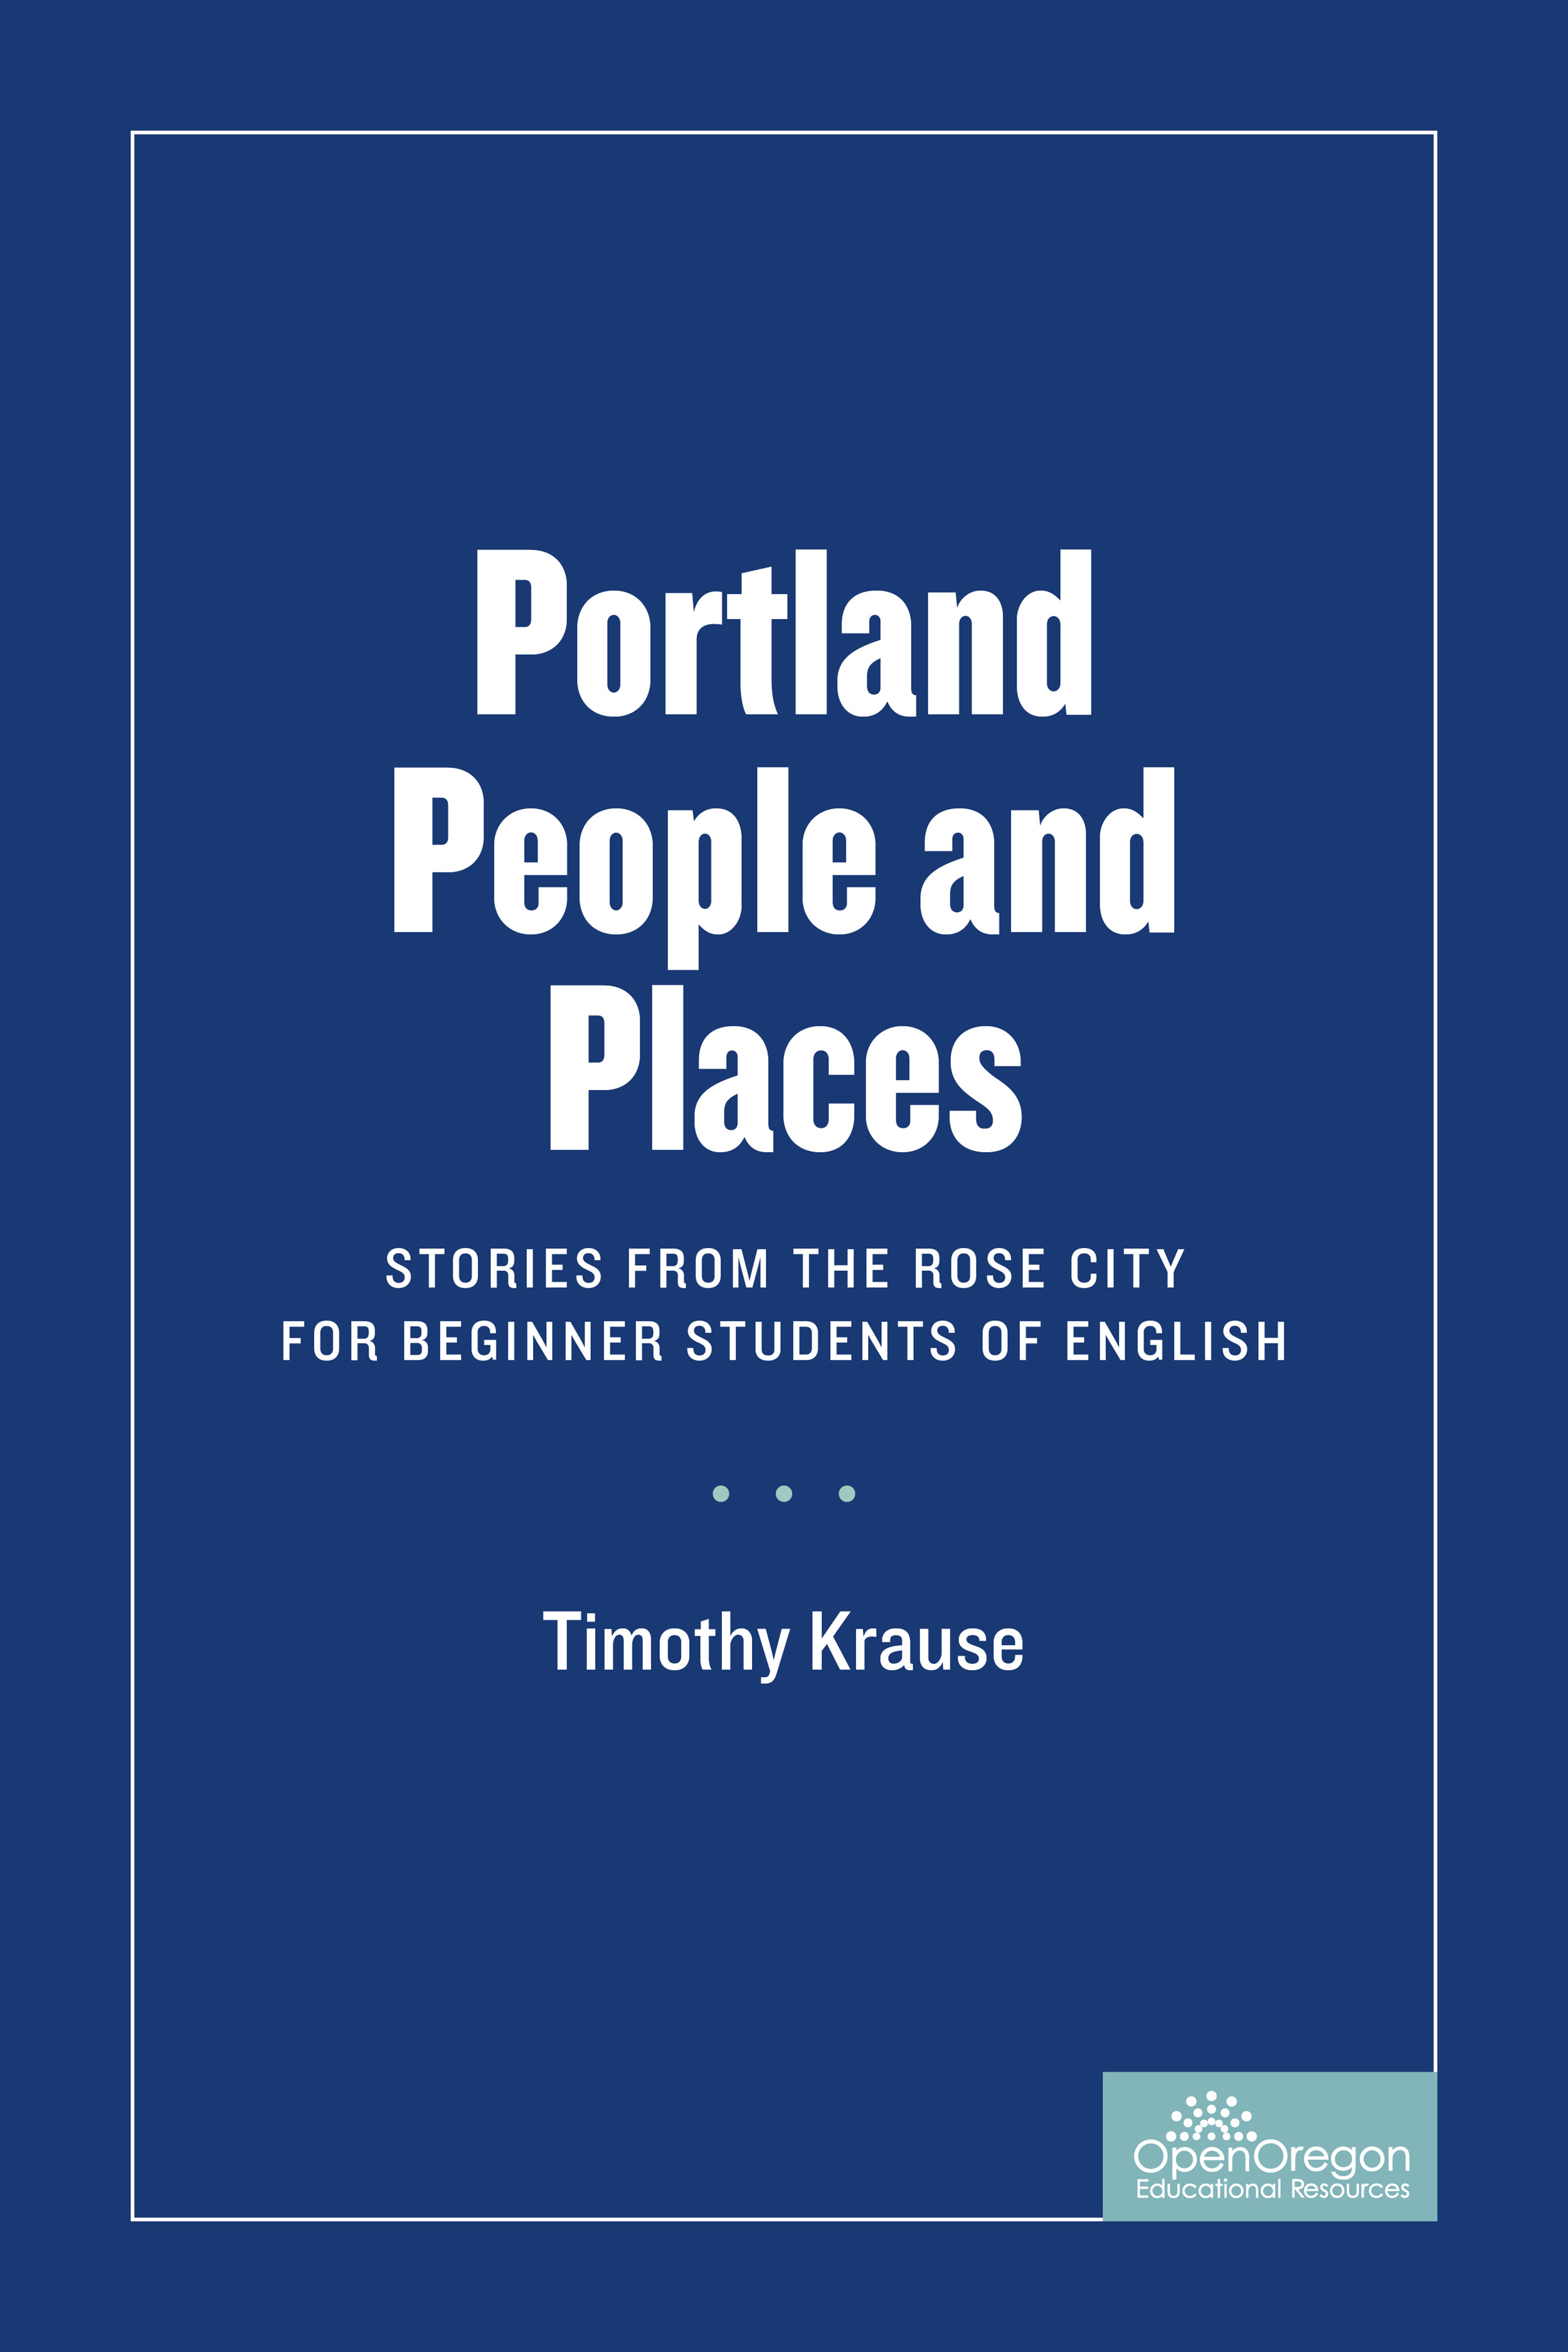 Portland People and Places